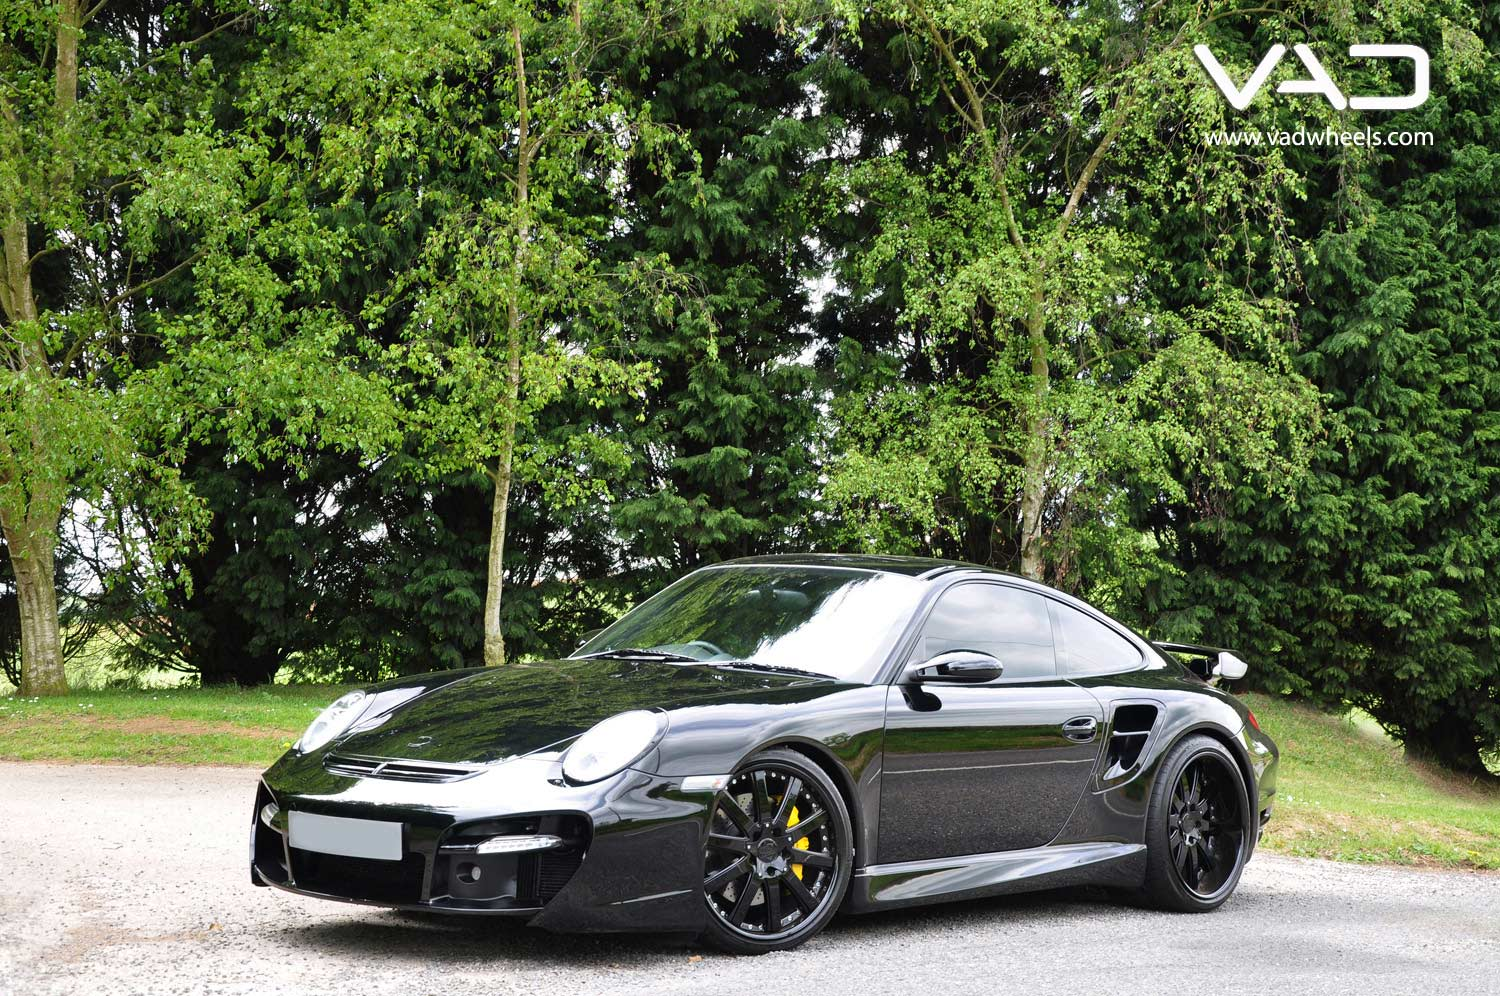 Porsche-997-Turbo-Fitted-With-20''-Altstadt-F100-Satin-Black